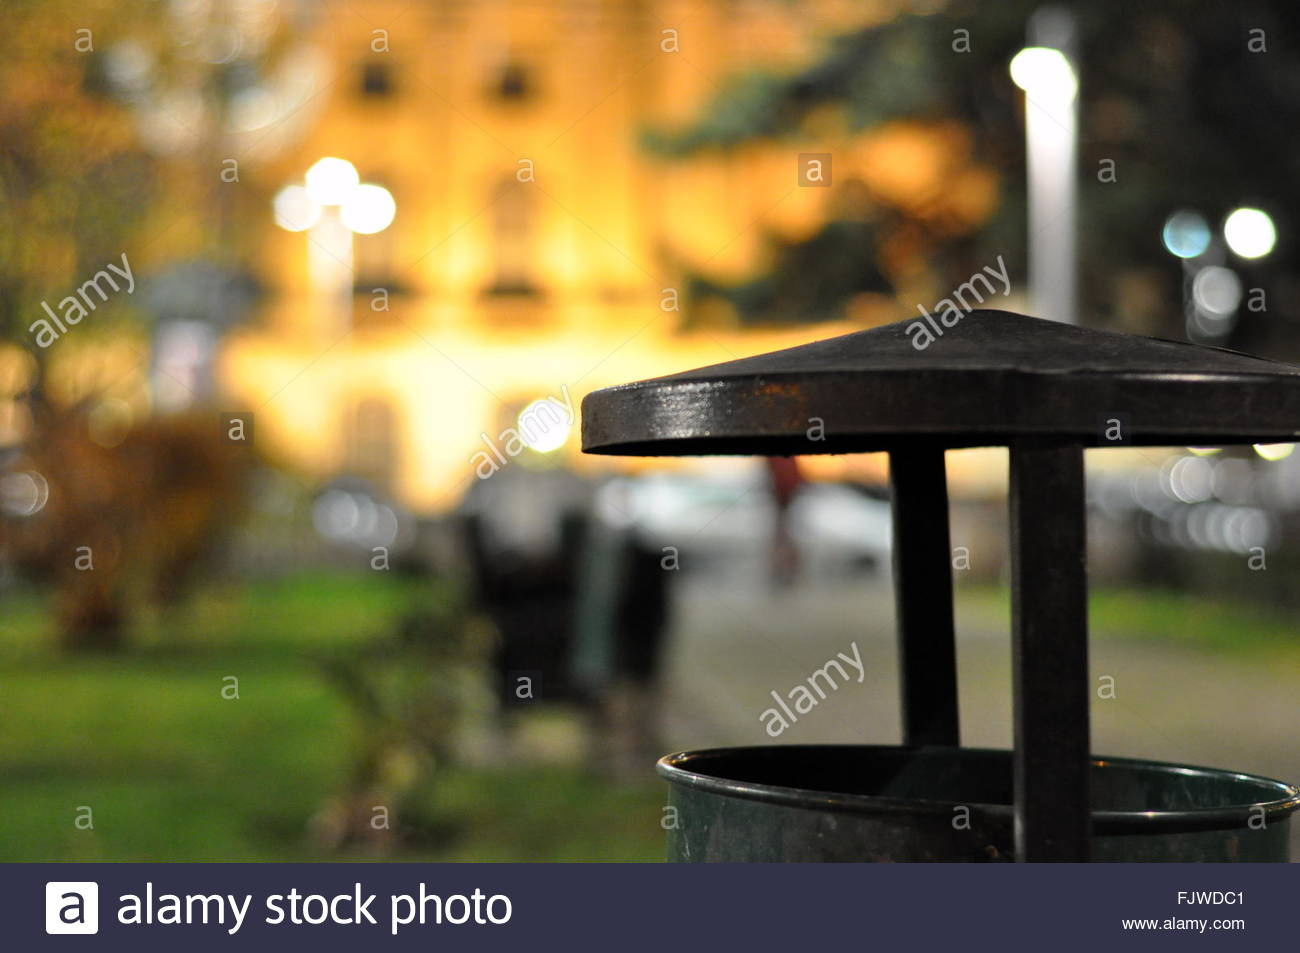 Close-Up Of Metallic Garbage Can In Park - Stock Image